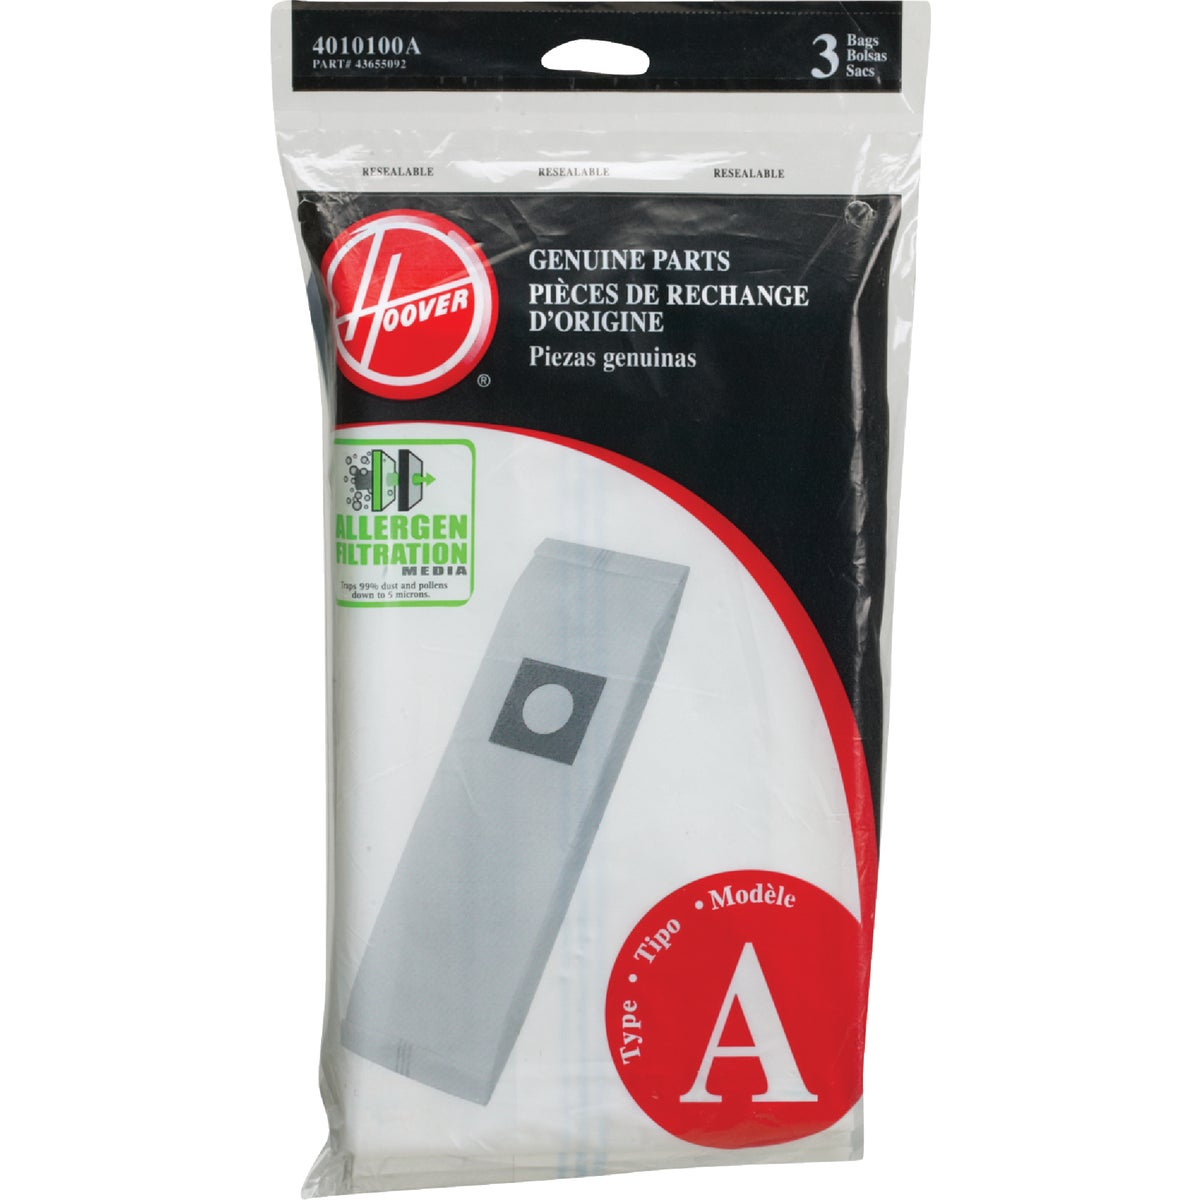 ALLERGEN VAC CLEANER BAG - 4010100A by Hoover Co